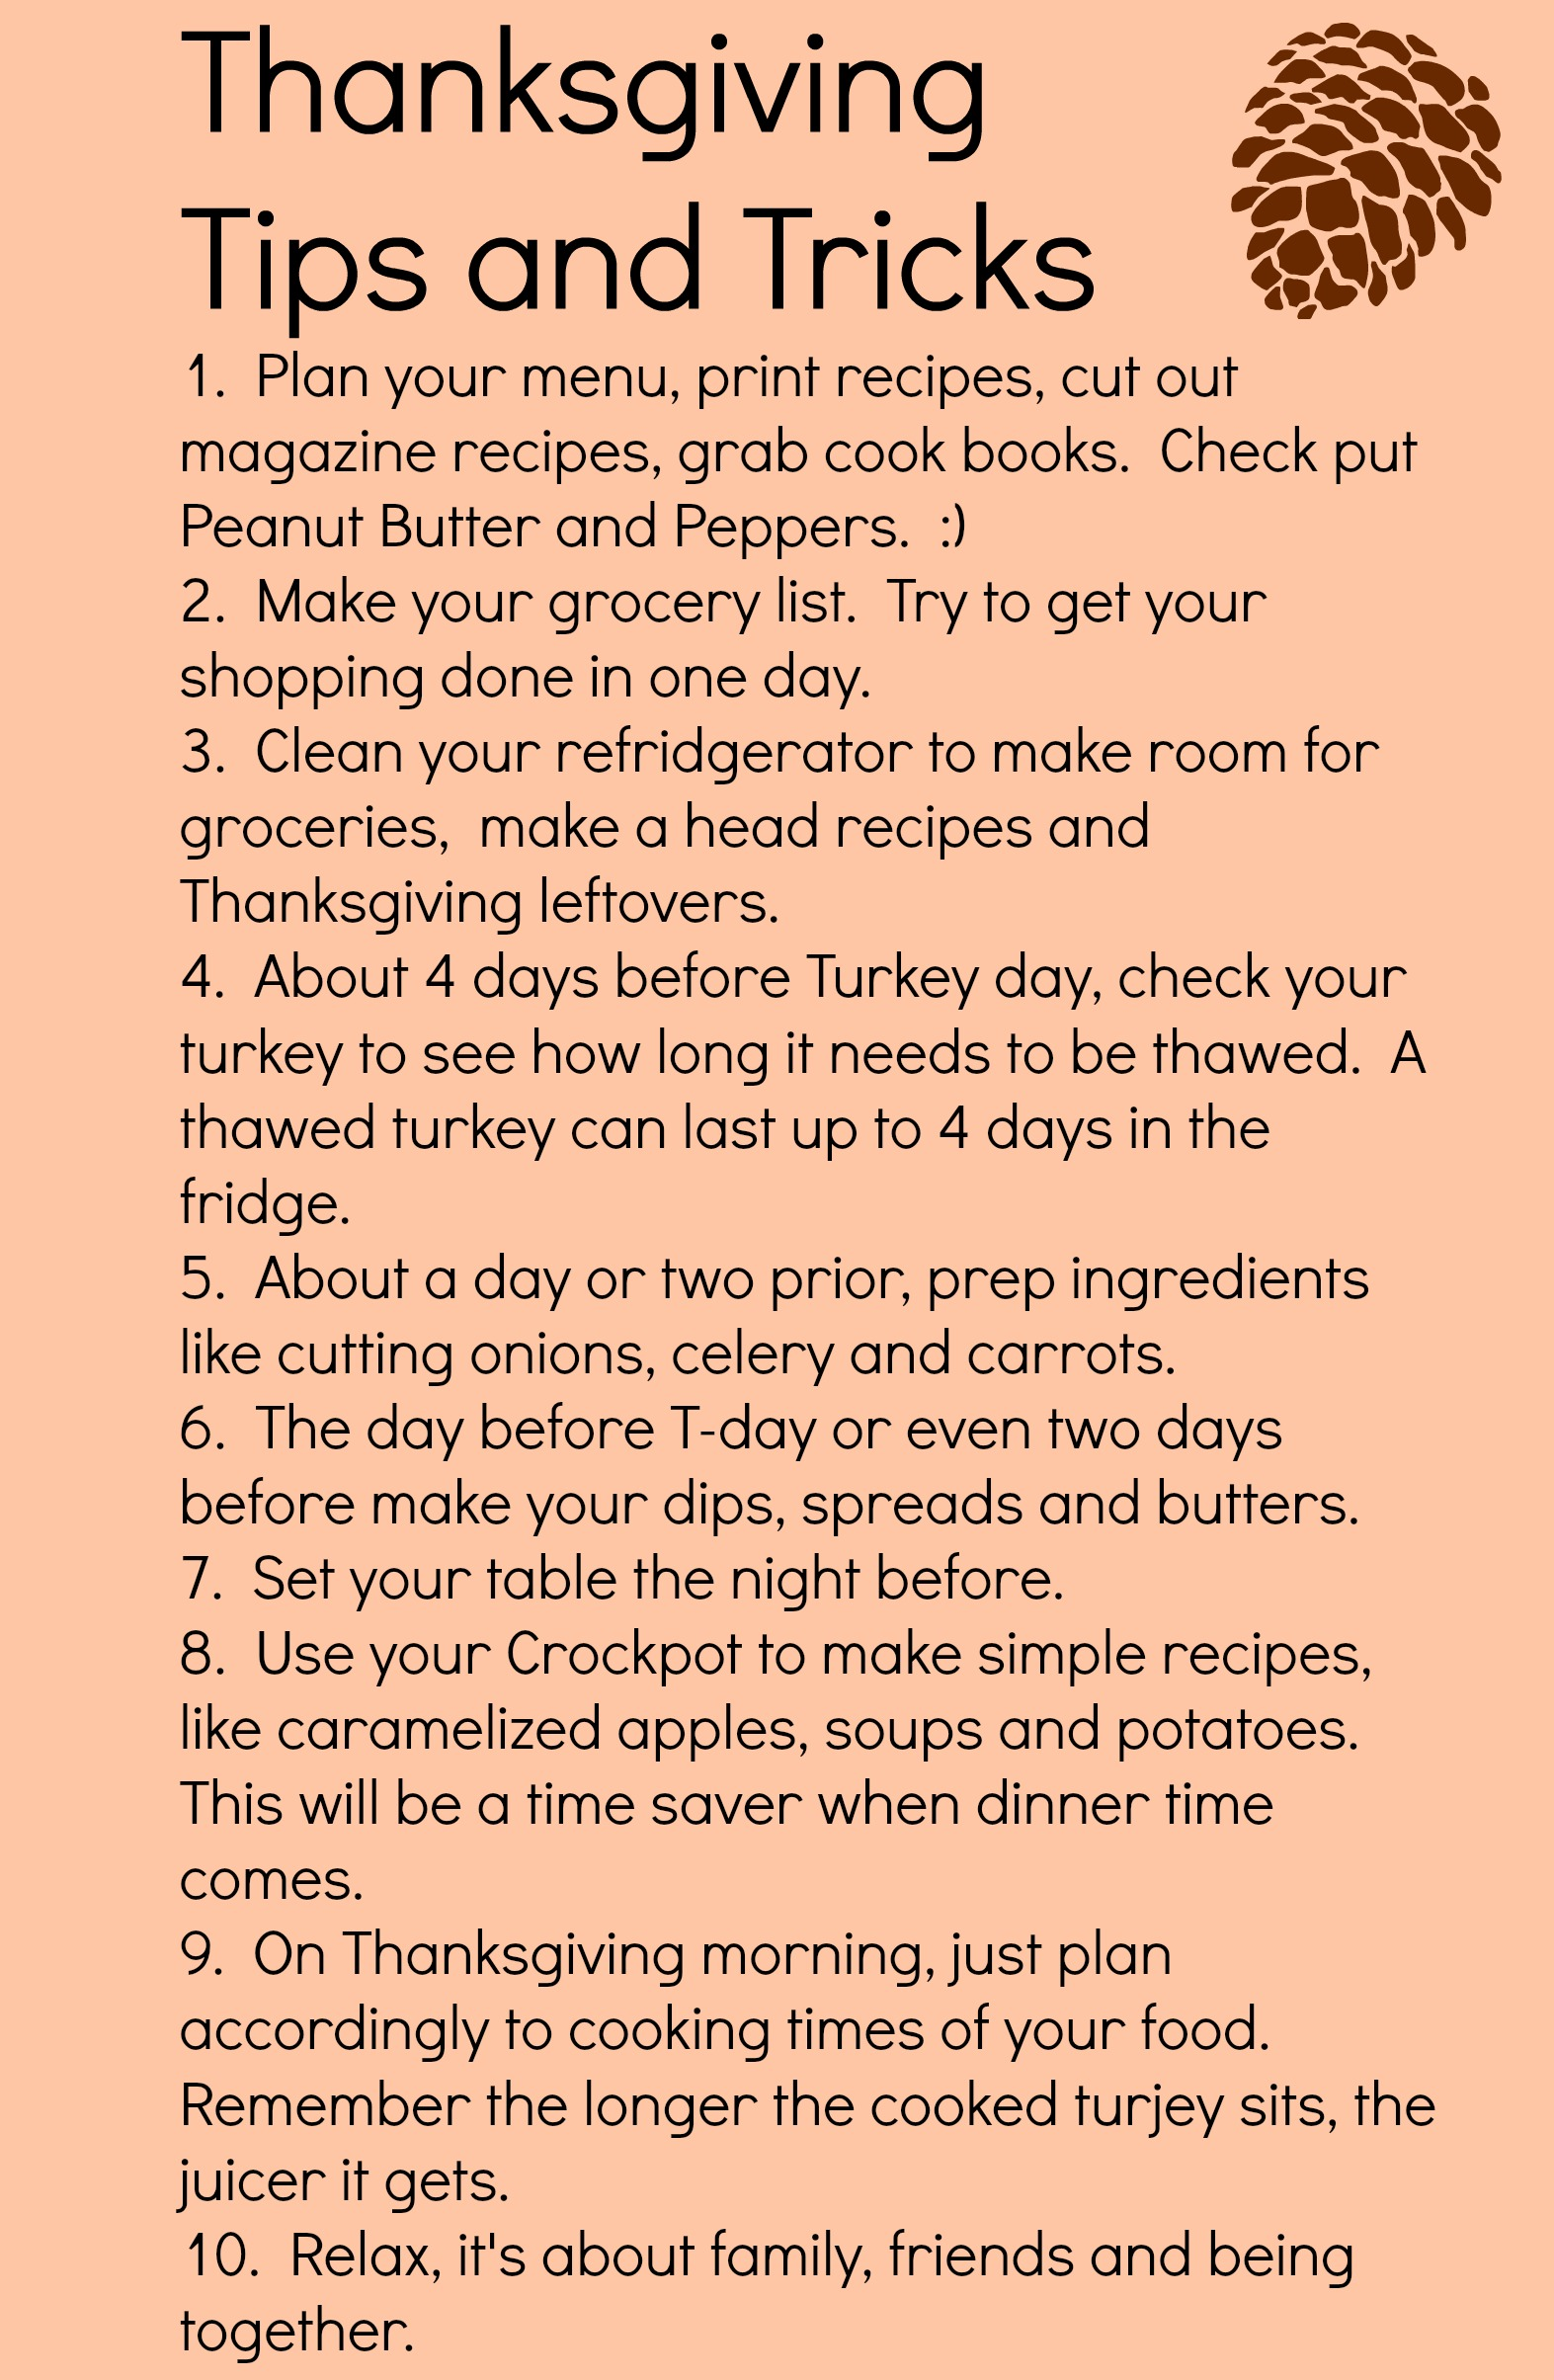 Thanksgiving Tips and Tricks